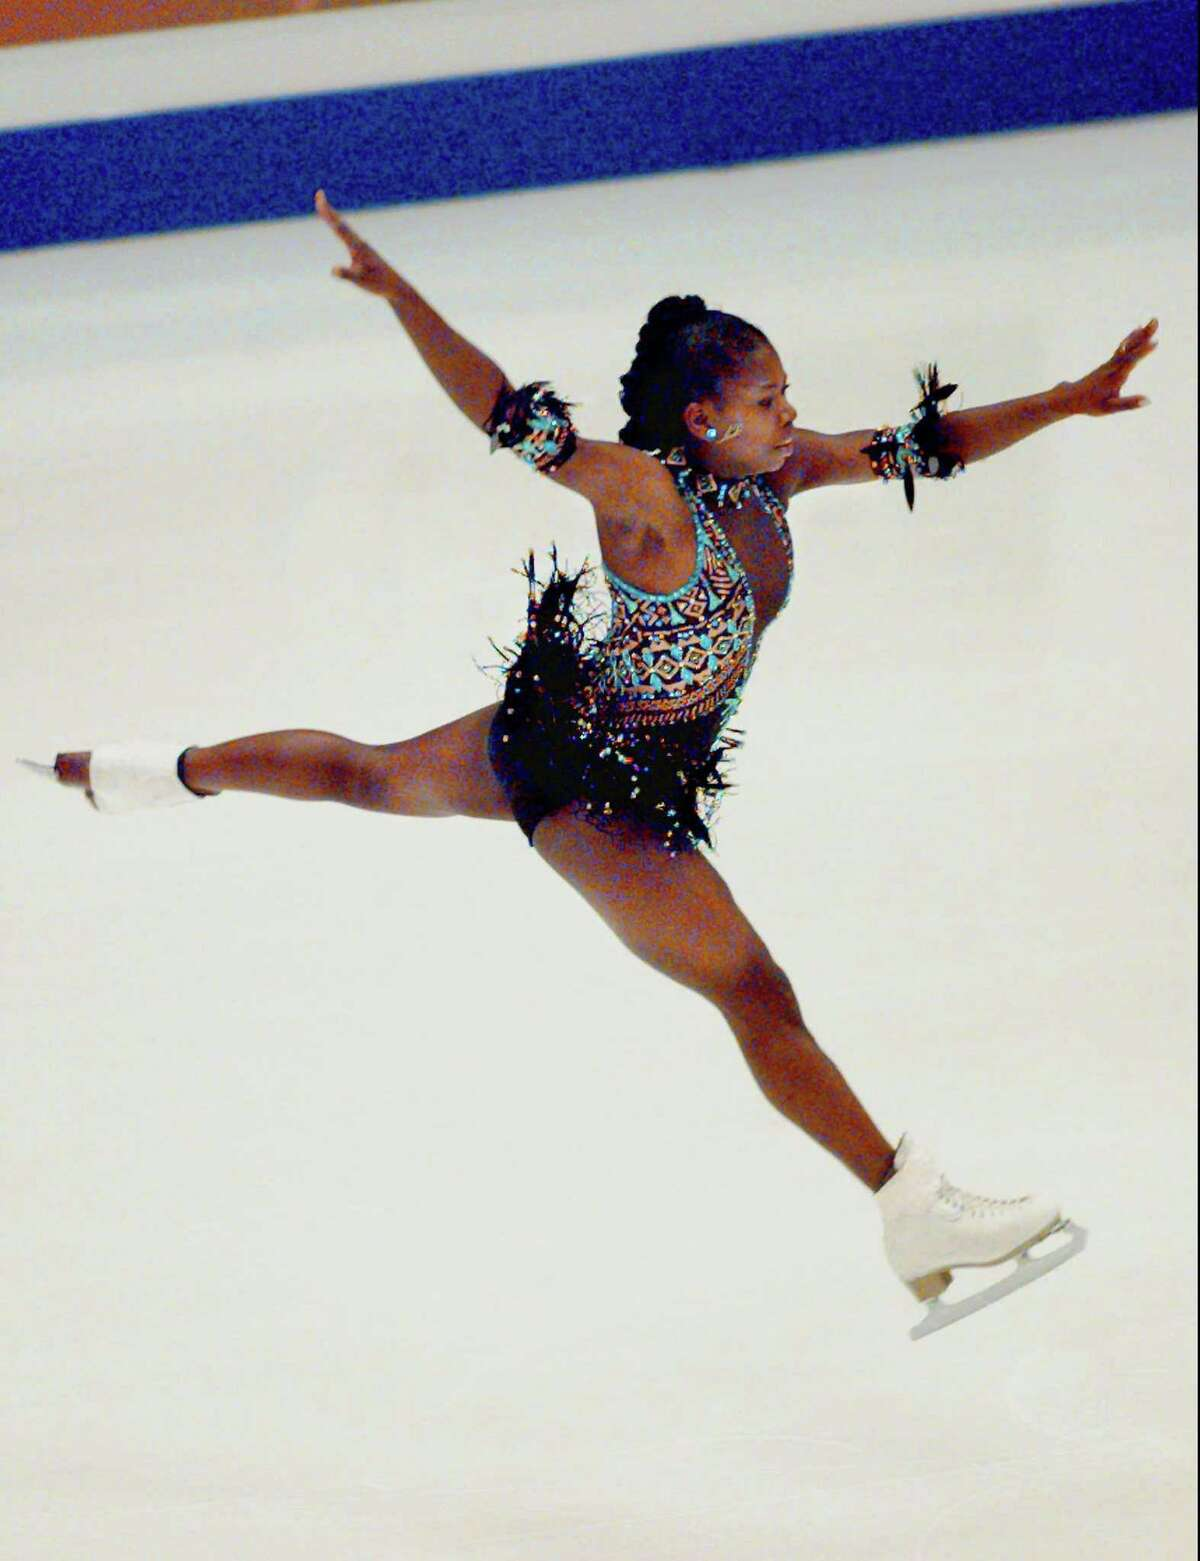 Surya Bonaly of France performs during her short program at the 1998 European Figure Skating Championships.